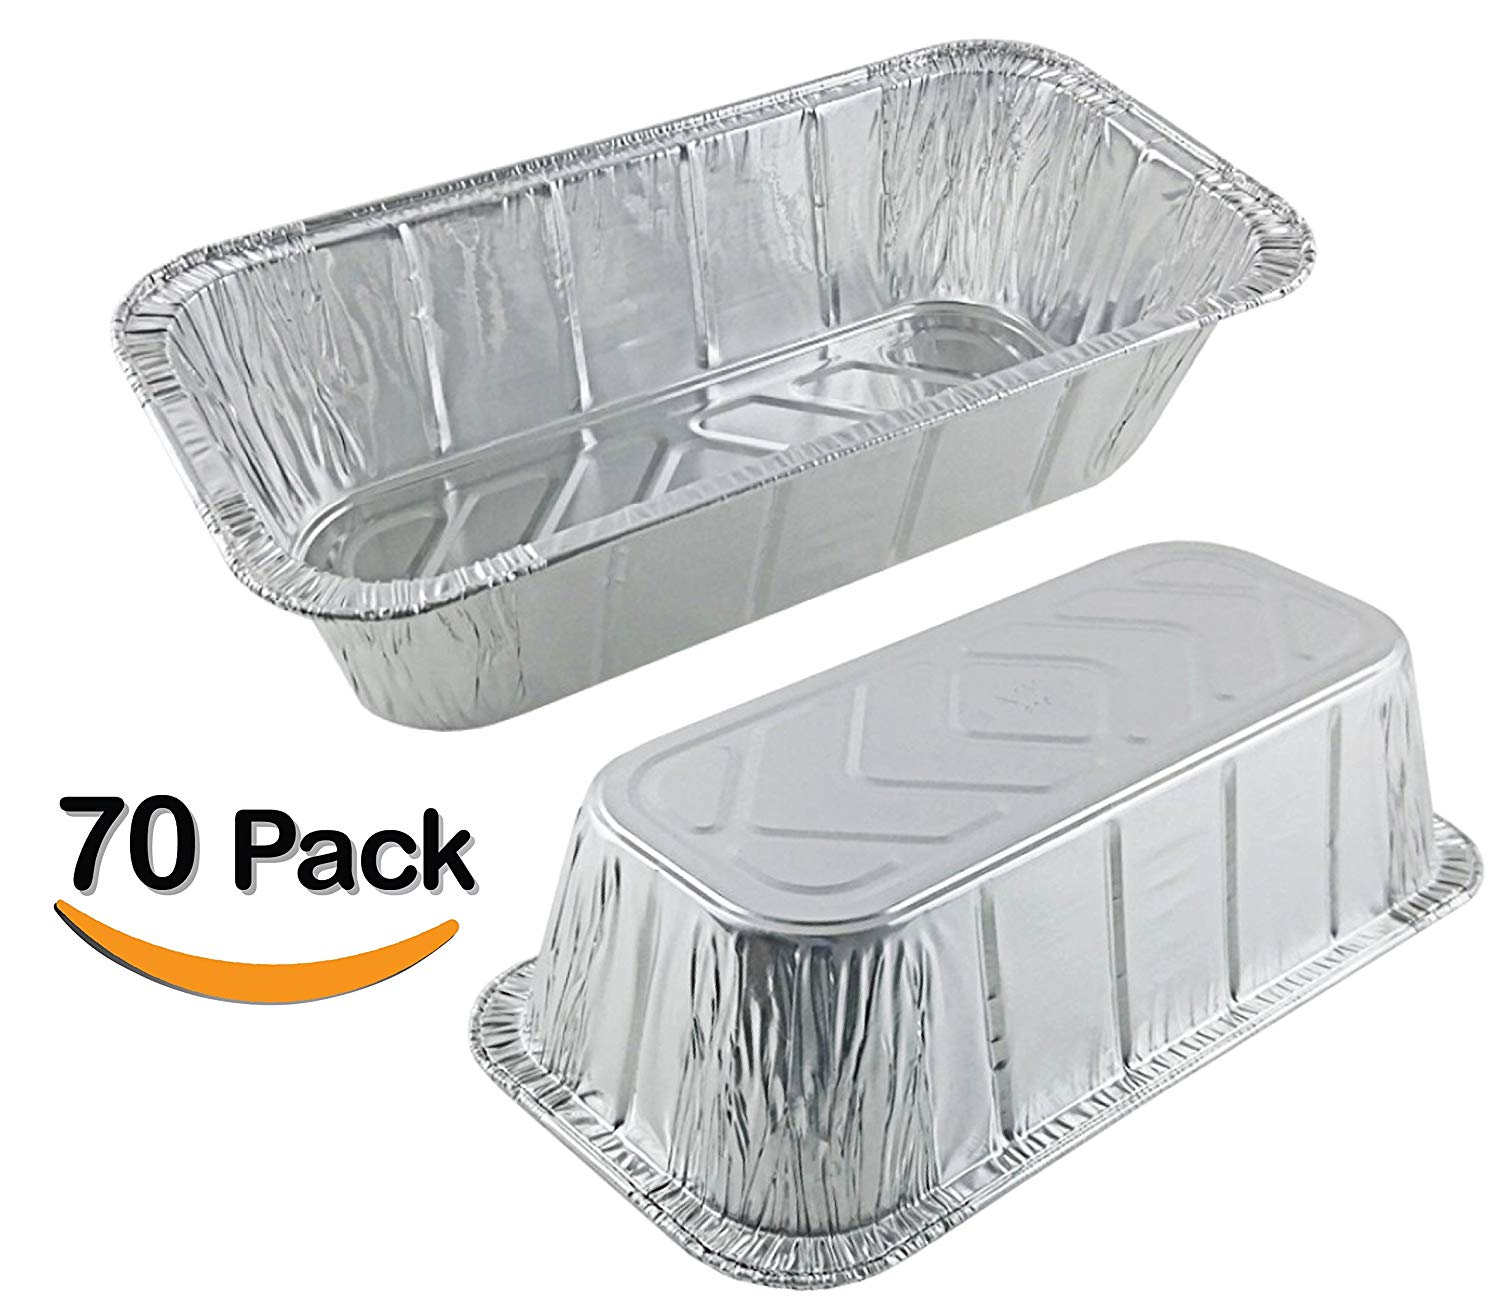 """70 Pack 2LB - Loaf Pans - Bread Pans l Disposable Aluminum Loaf Pans, Aluminum Bread Pans l For Homemade Cakes and Breads, Meatloaf - Standard Size, 2 Pounds - 8.5"""" X 4.5"""" X 2.5"""""""